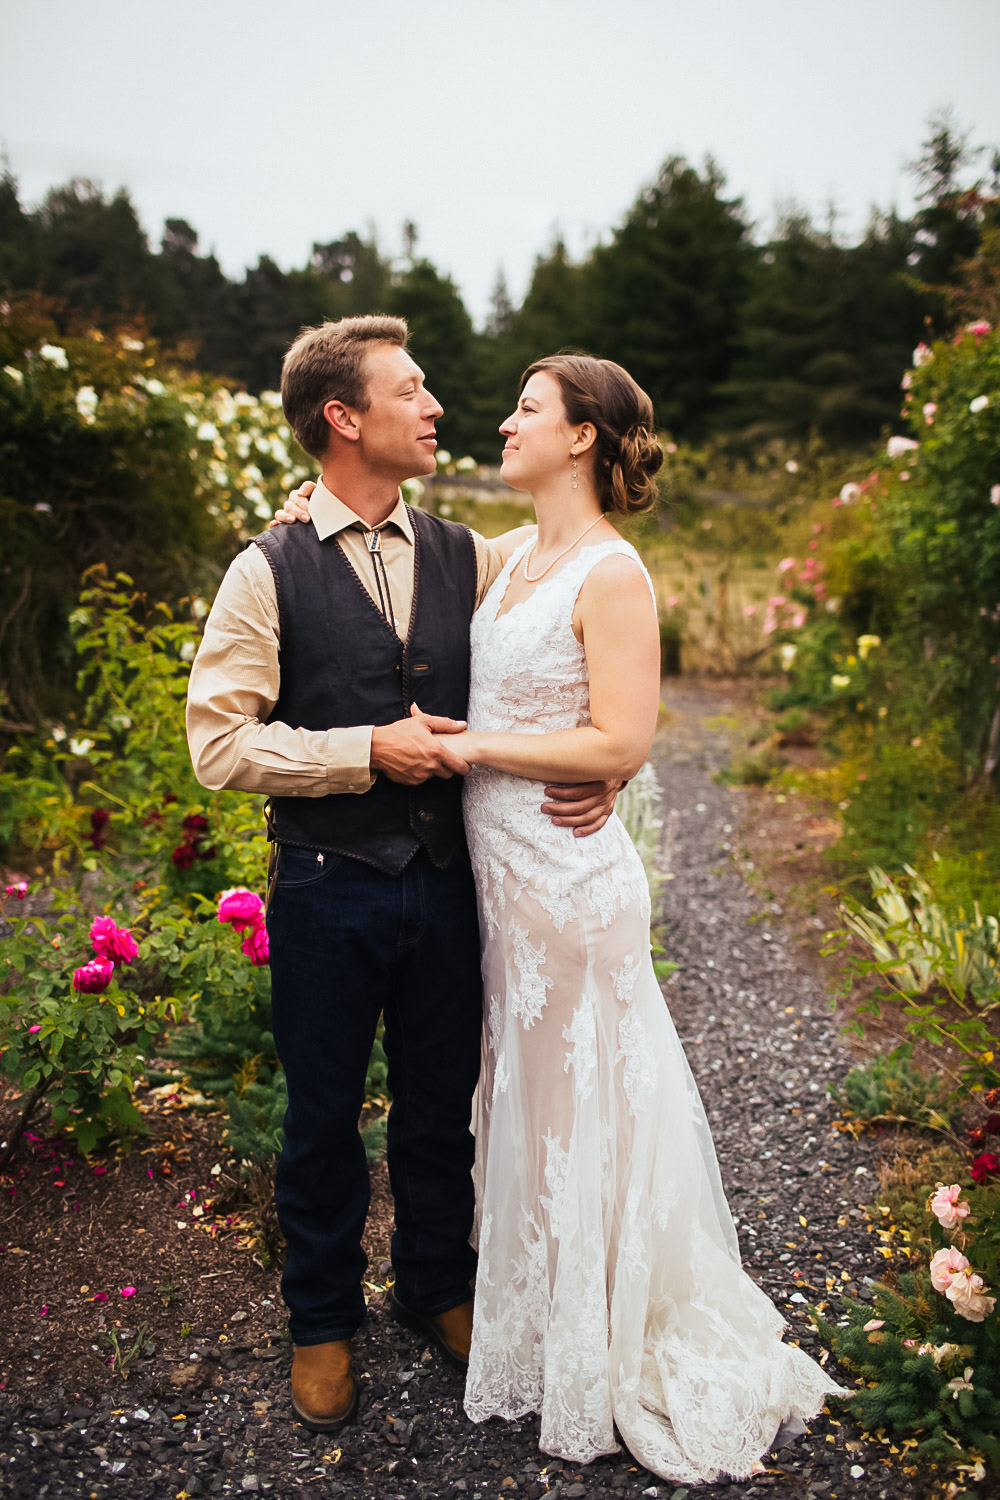 nevada-county-wedding-photographer-natural-light-5.jpg